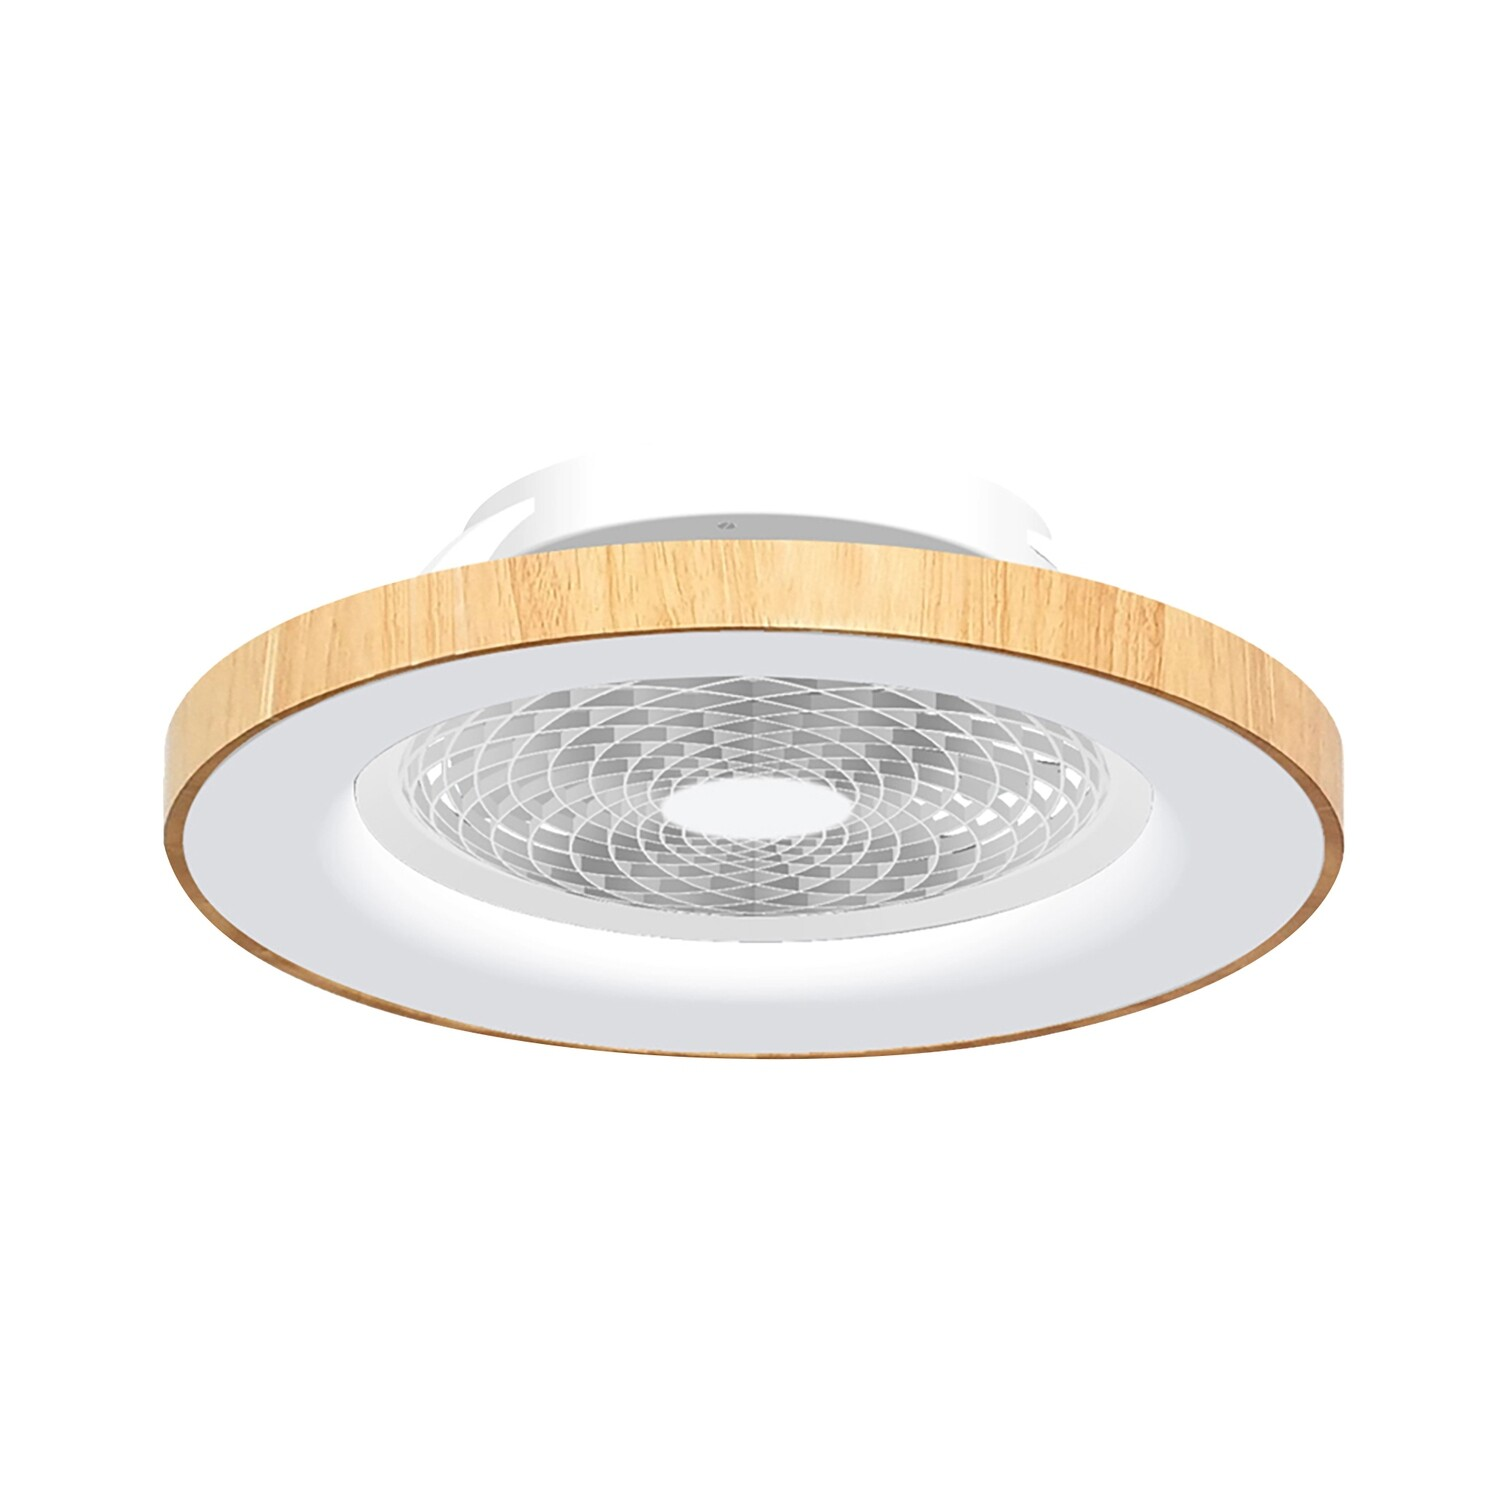 Tibet 70W LED Dimmable Ceiling Light With Built-In 35W DC Fan, c/w Remote Control and APP Control, 3000lm, Wood Effect/White, 5yrs Warranty